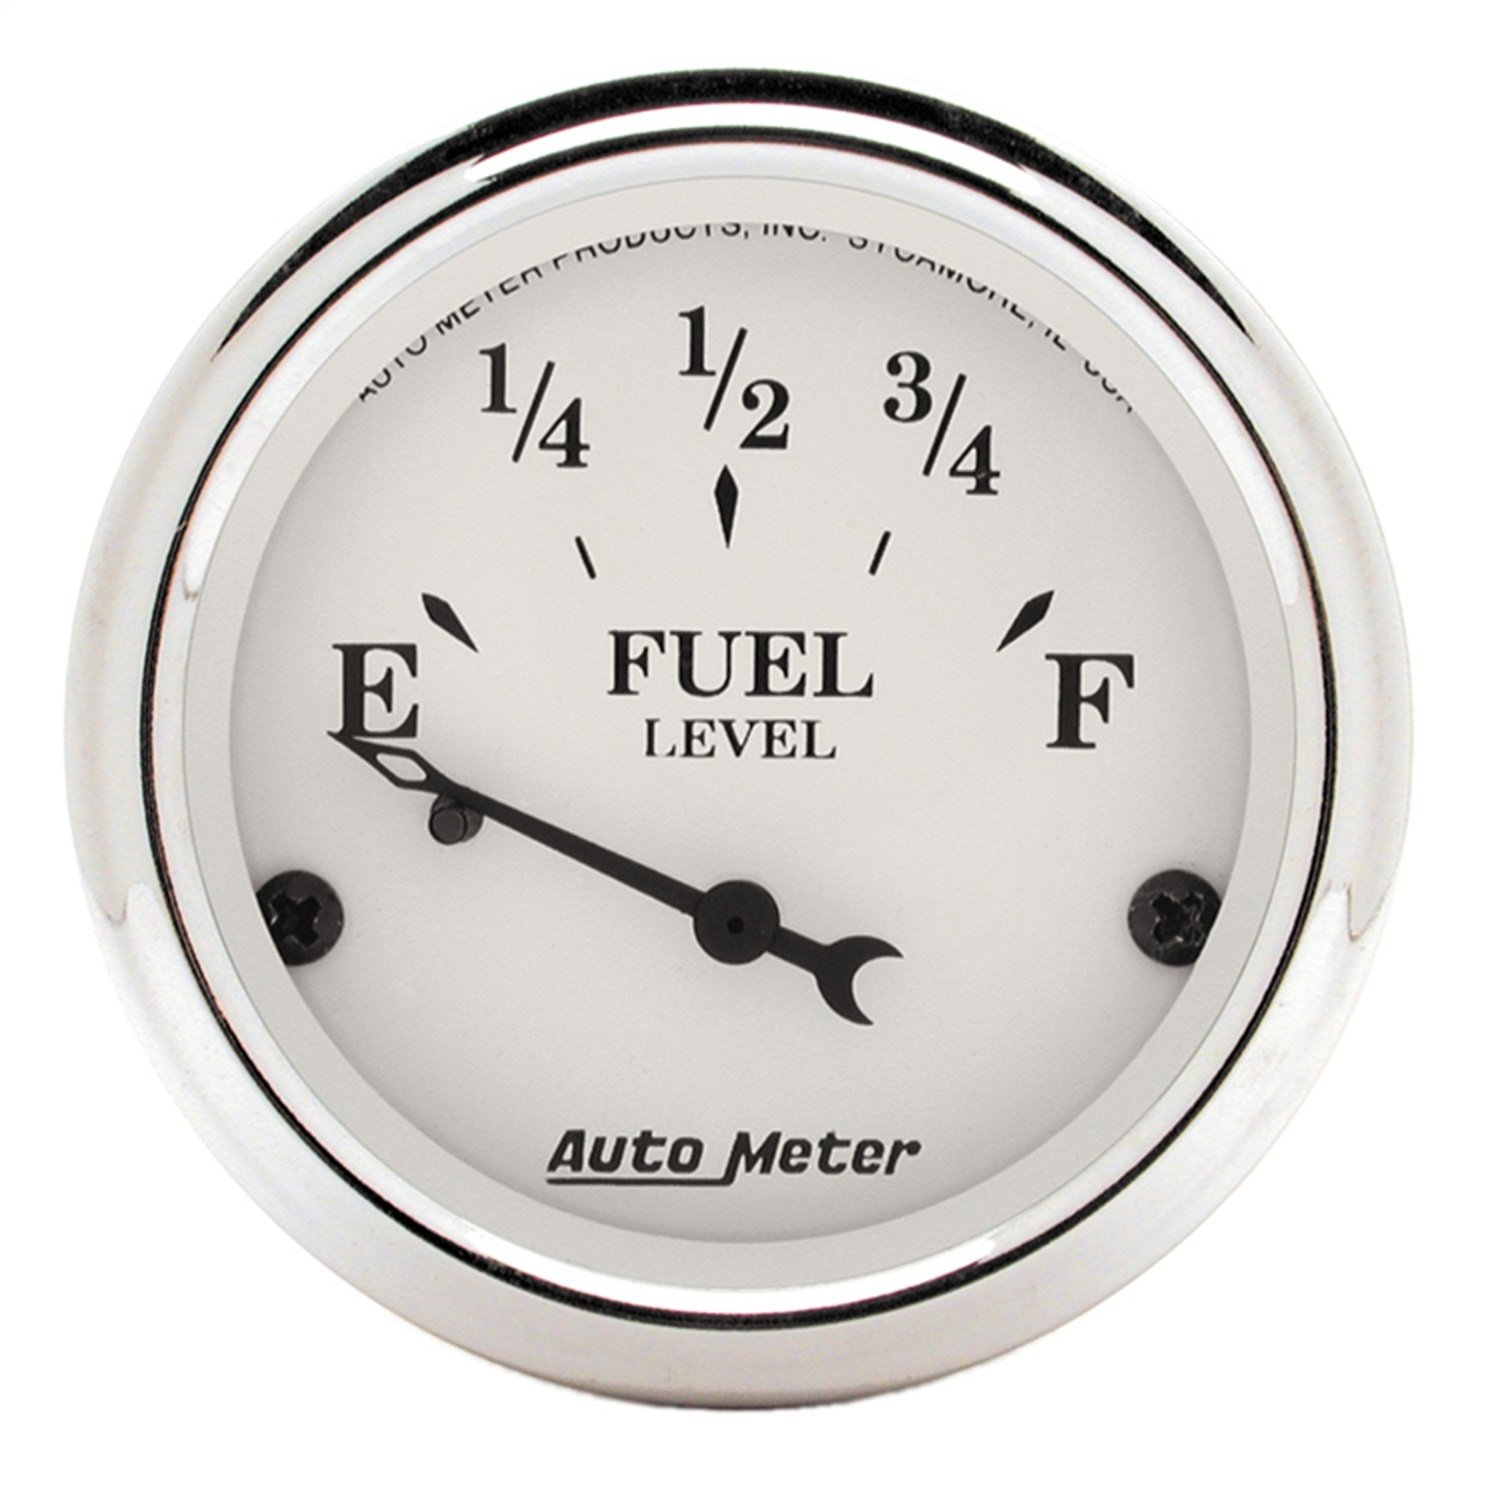 Auto Meter 1605 Old Tyme White Fuel Level Gauge